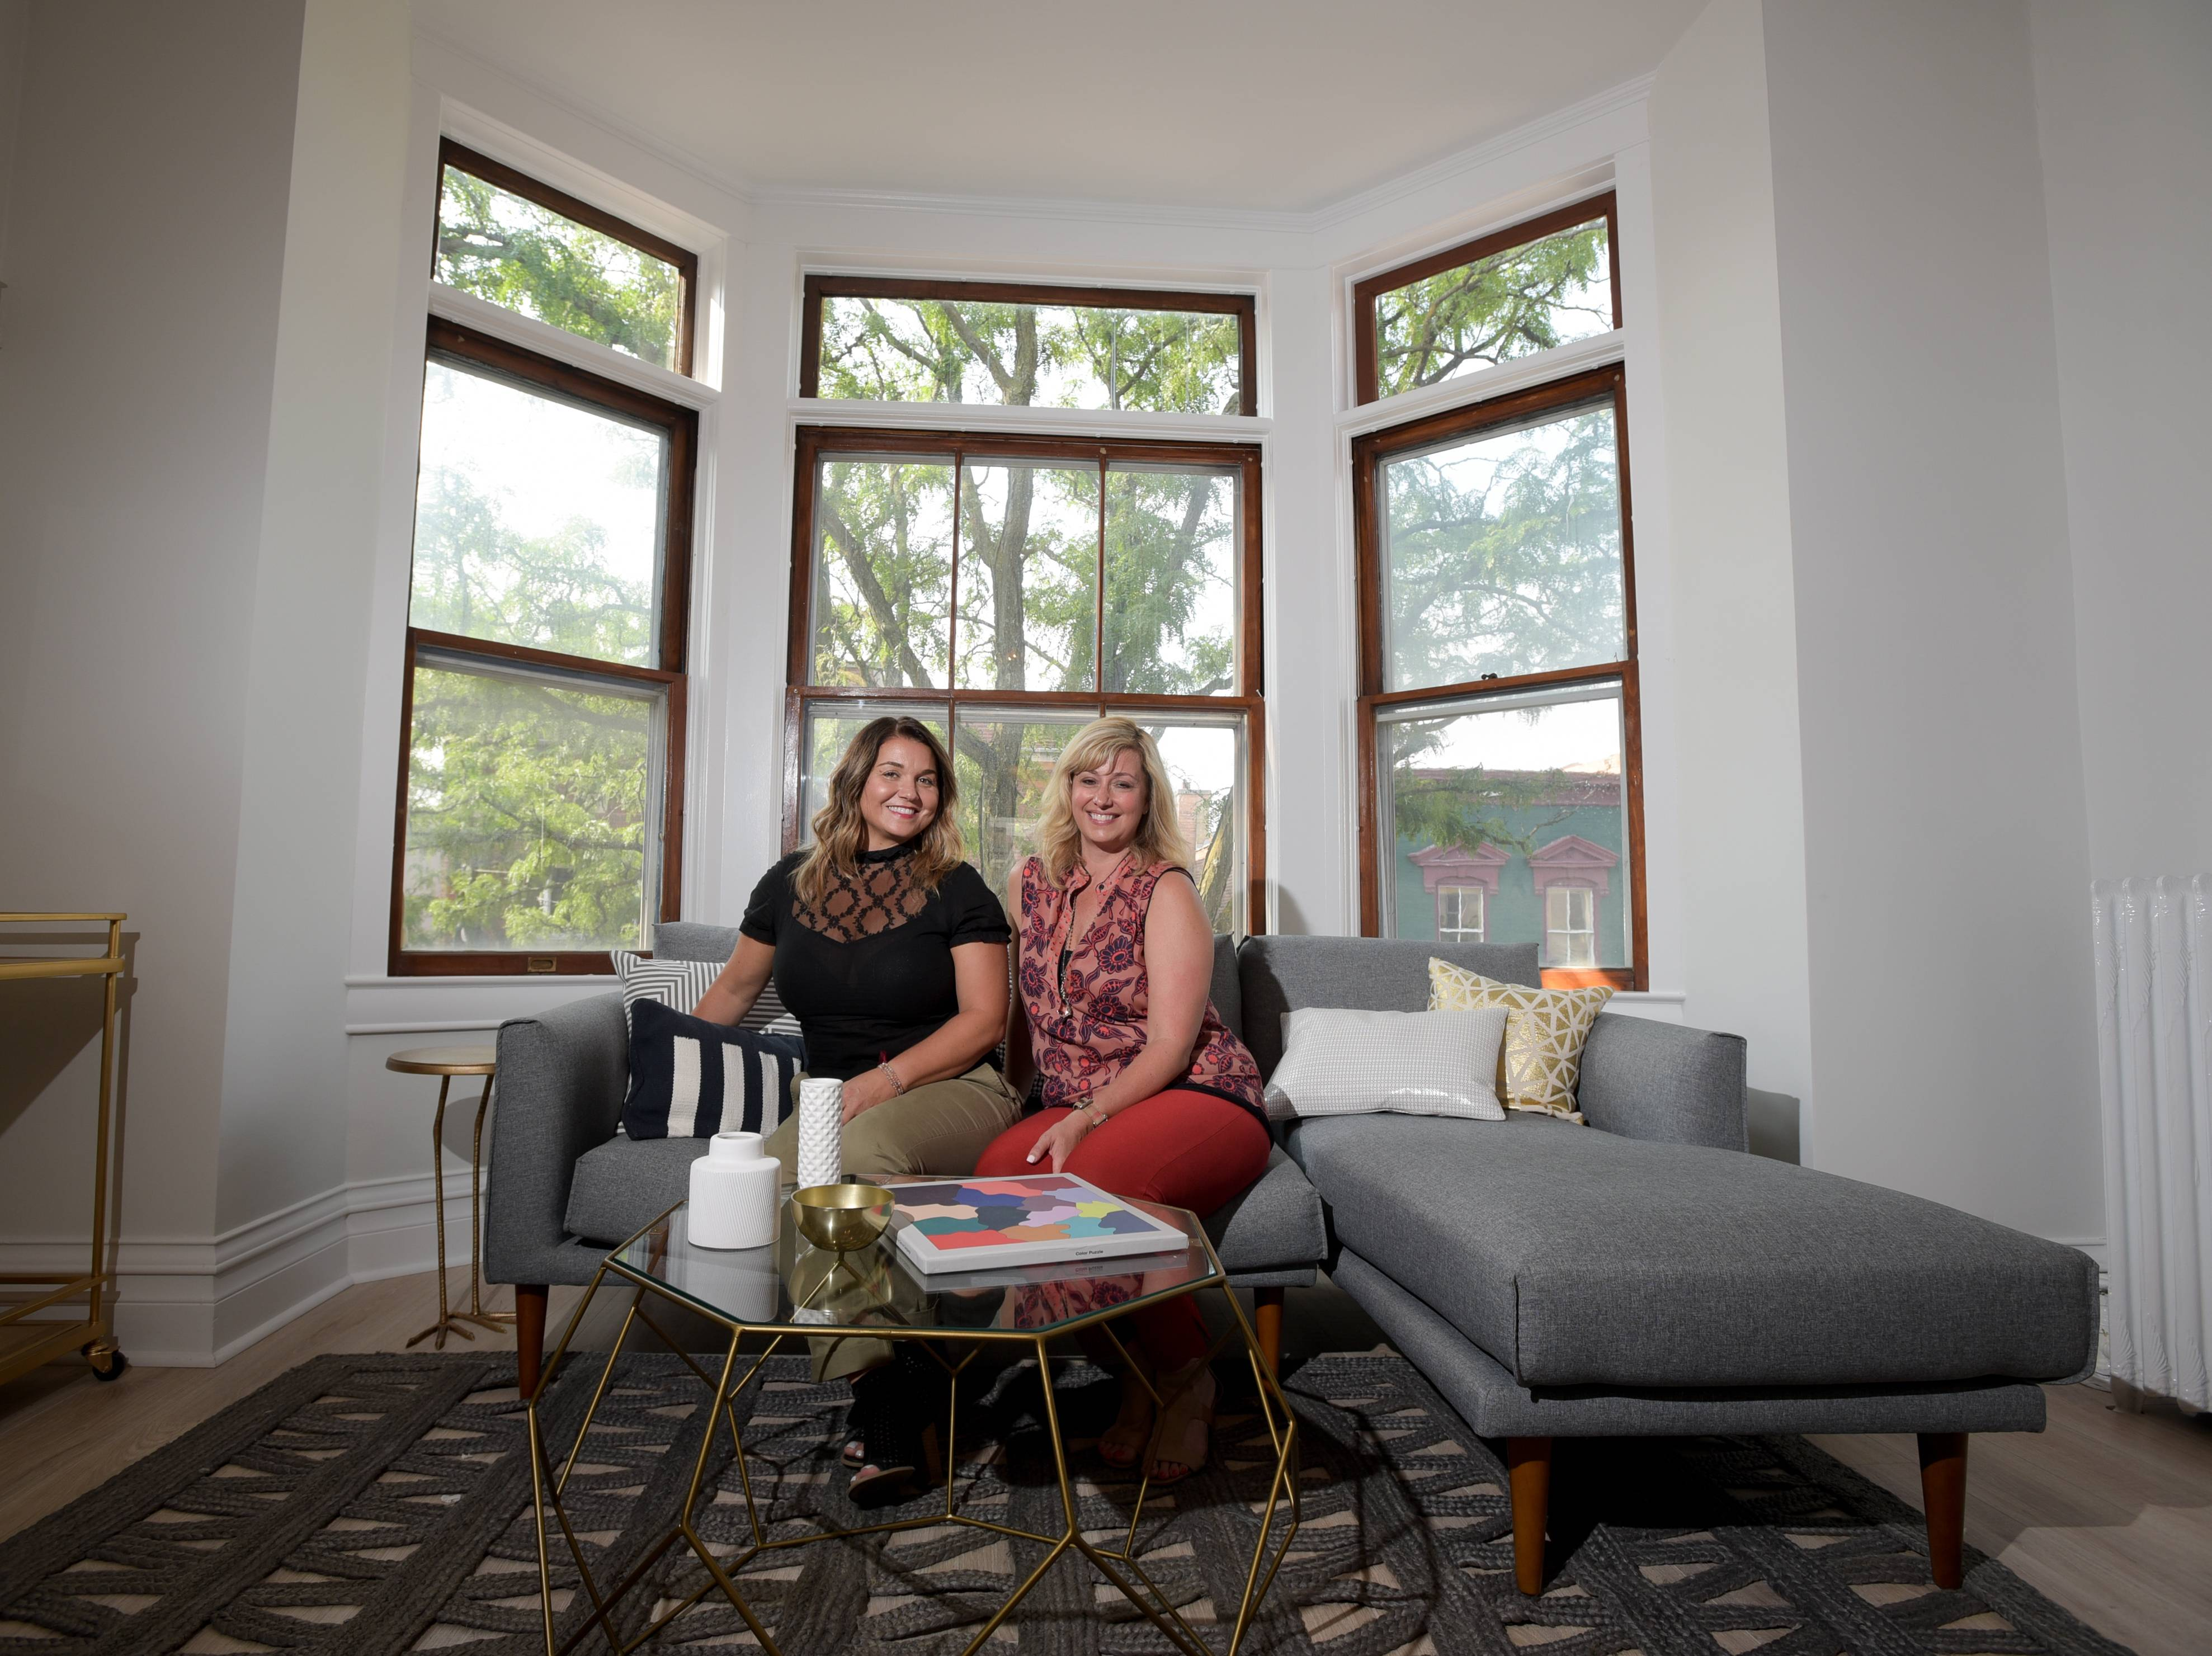 New Naperville co-working space targets women entrepreneurs